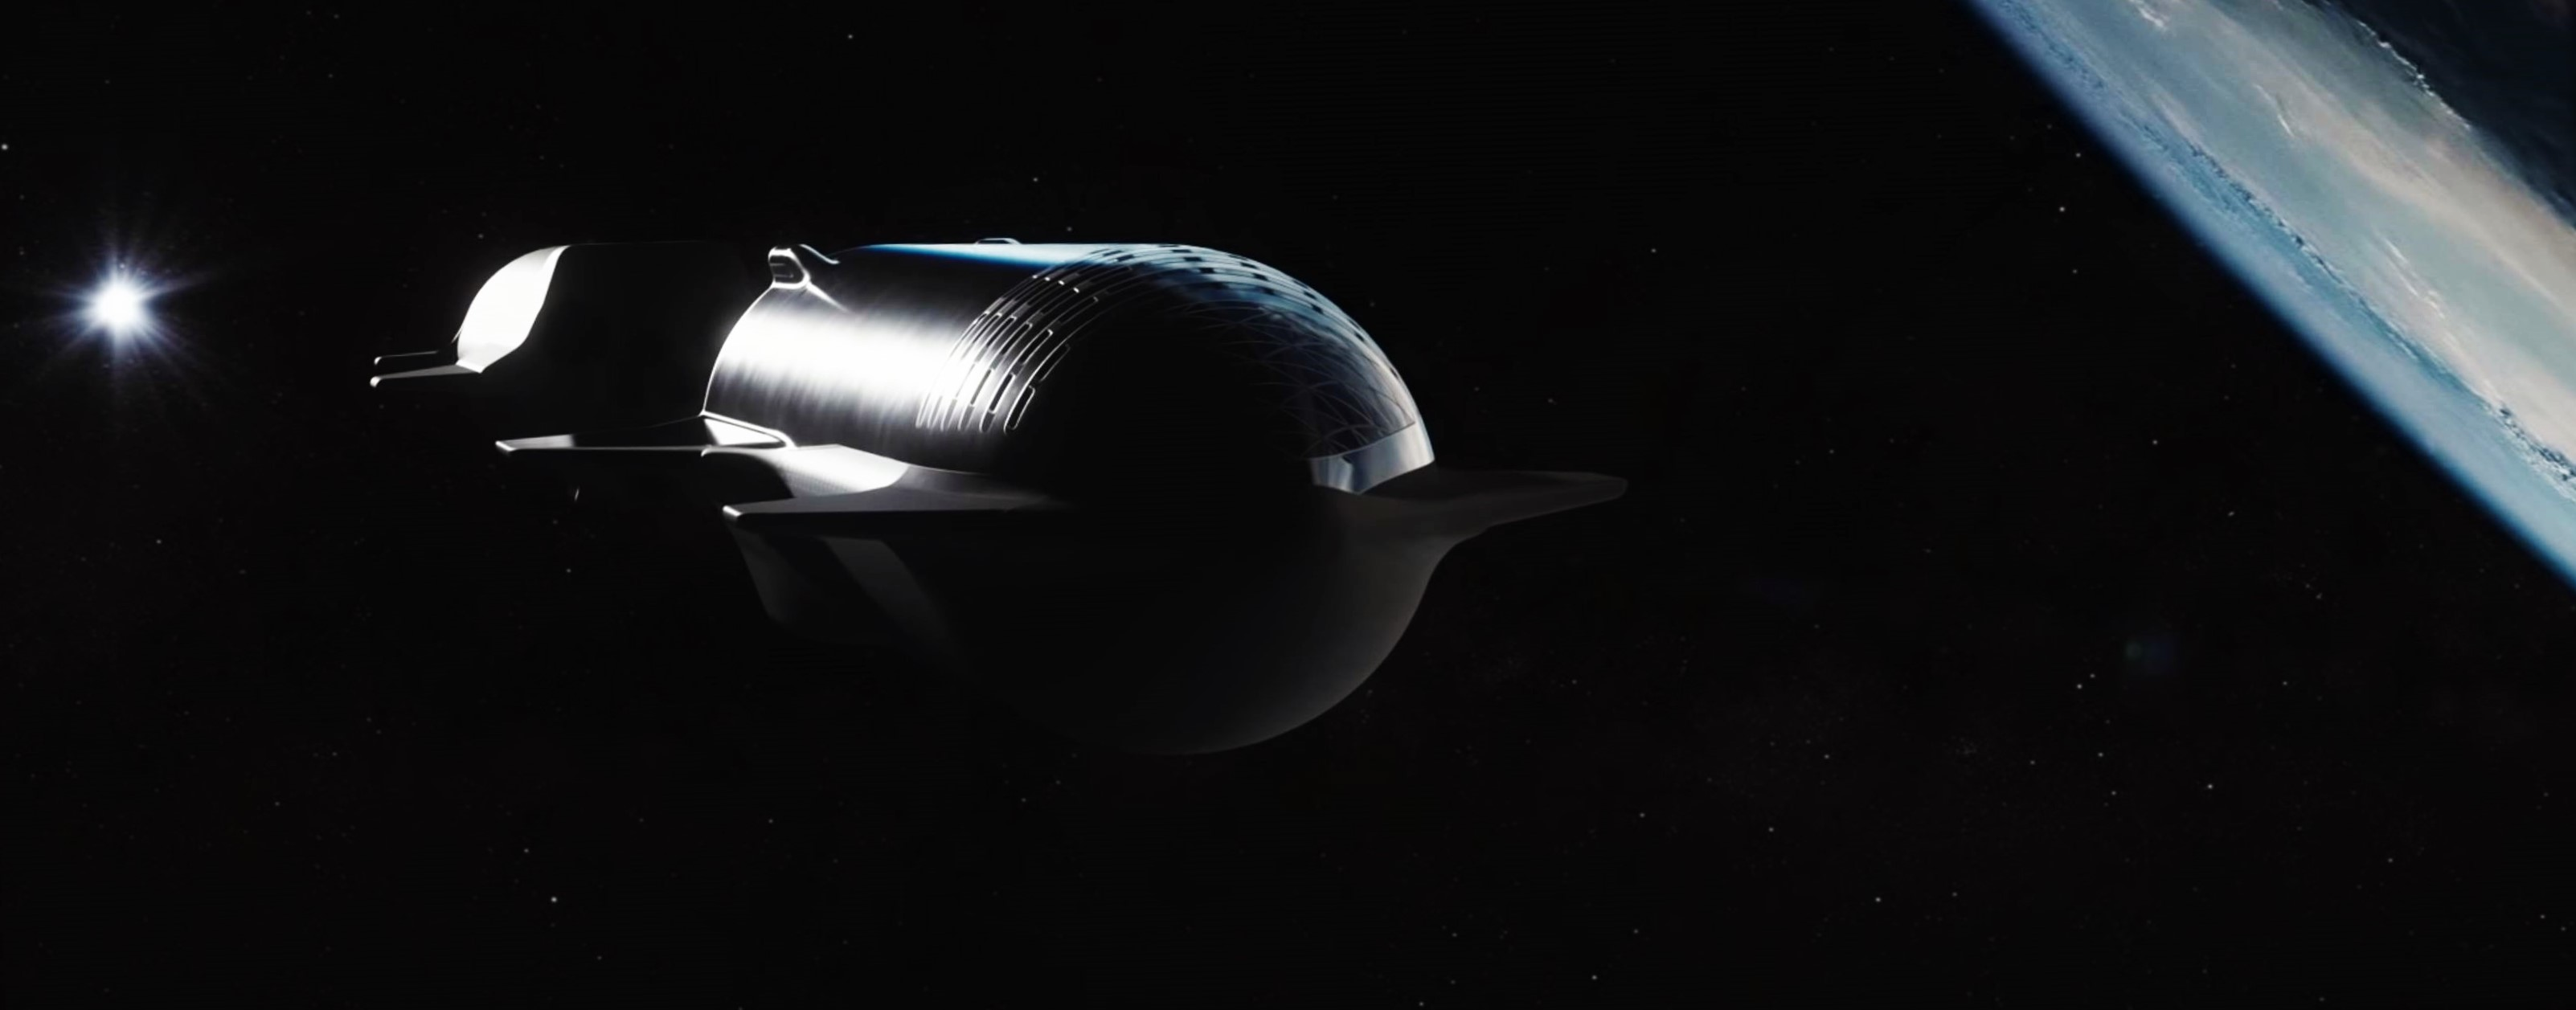 Starship Super Heavy 2019 (SpaceX) refueling 4 crop